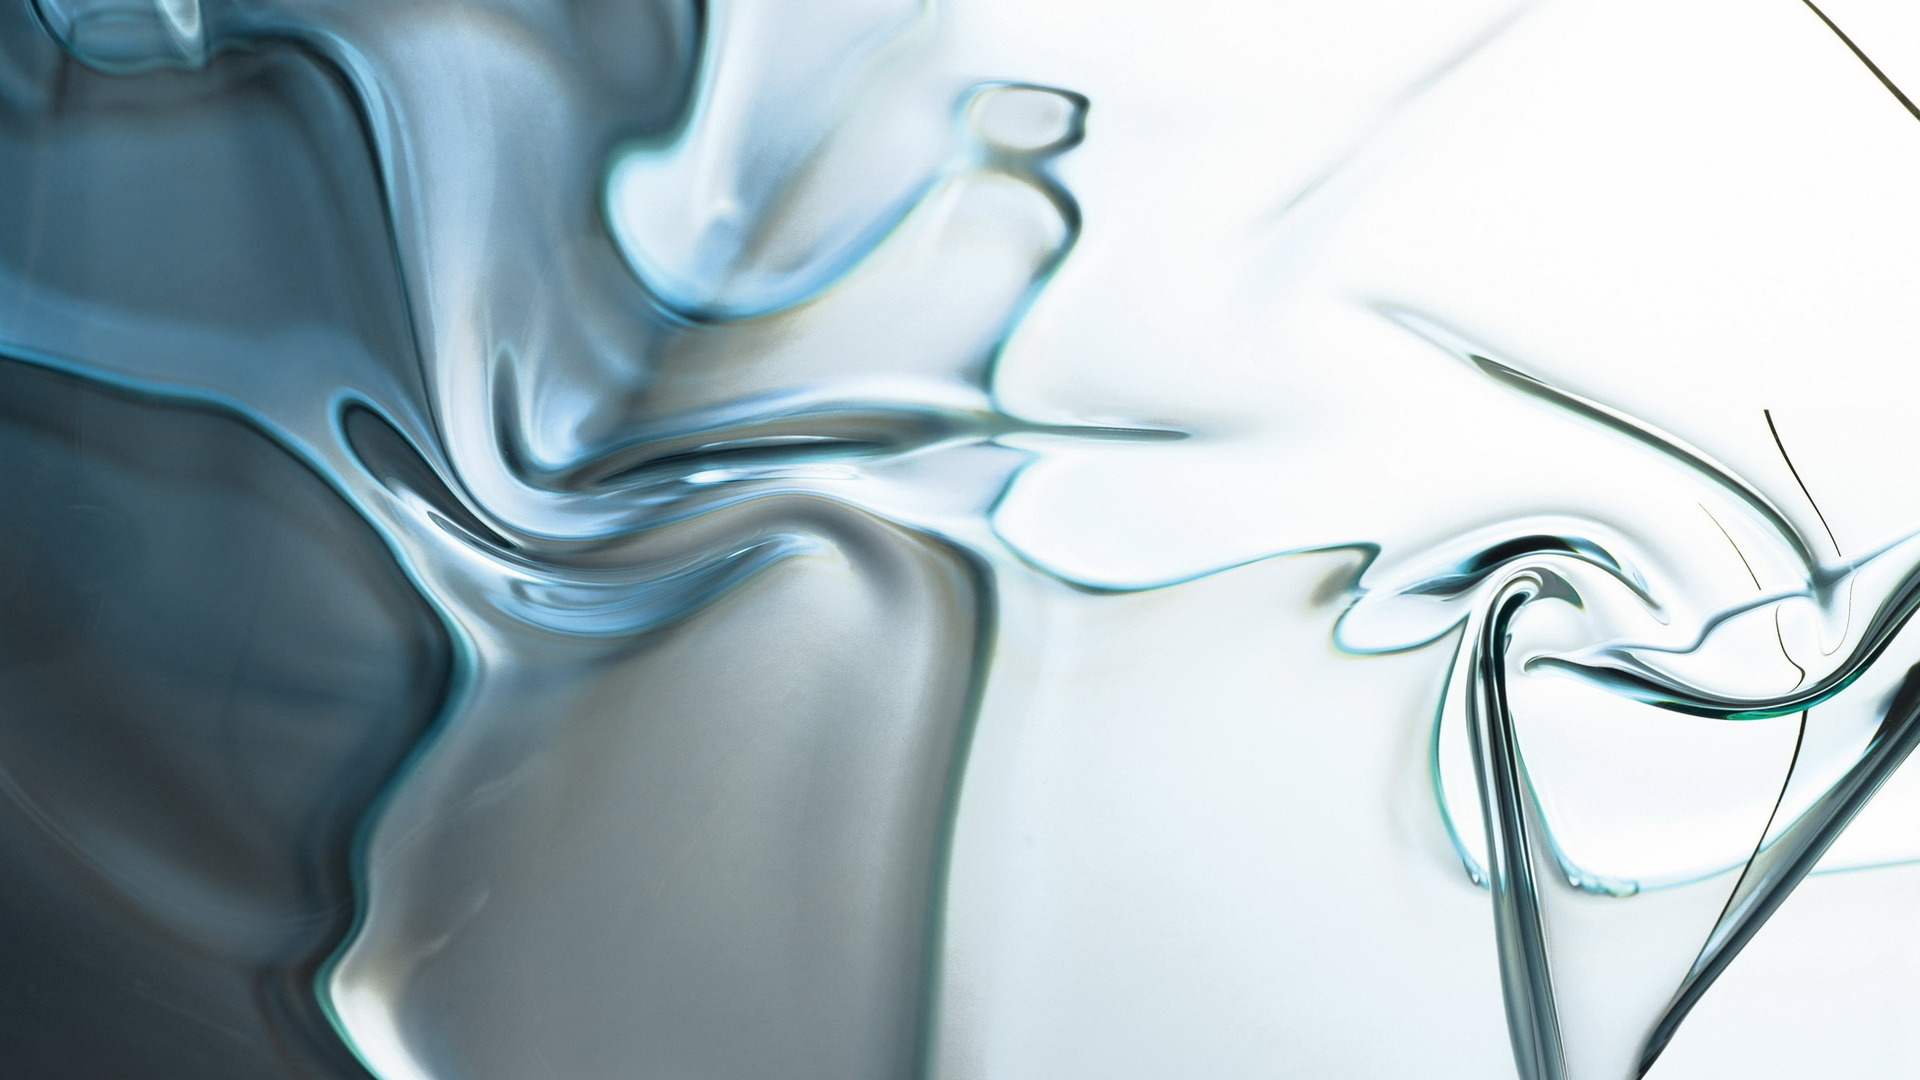 11 Awesome HD Liquid Wallpapers